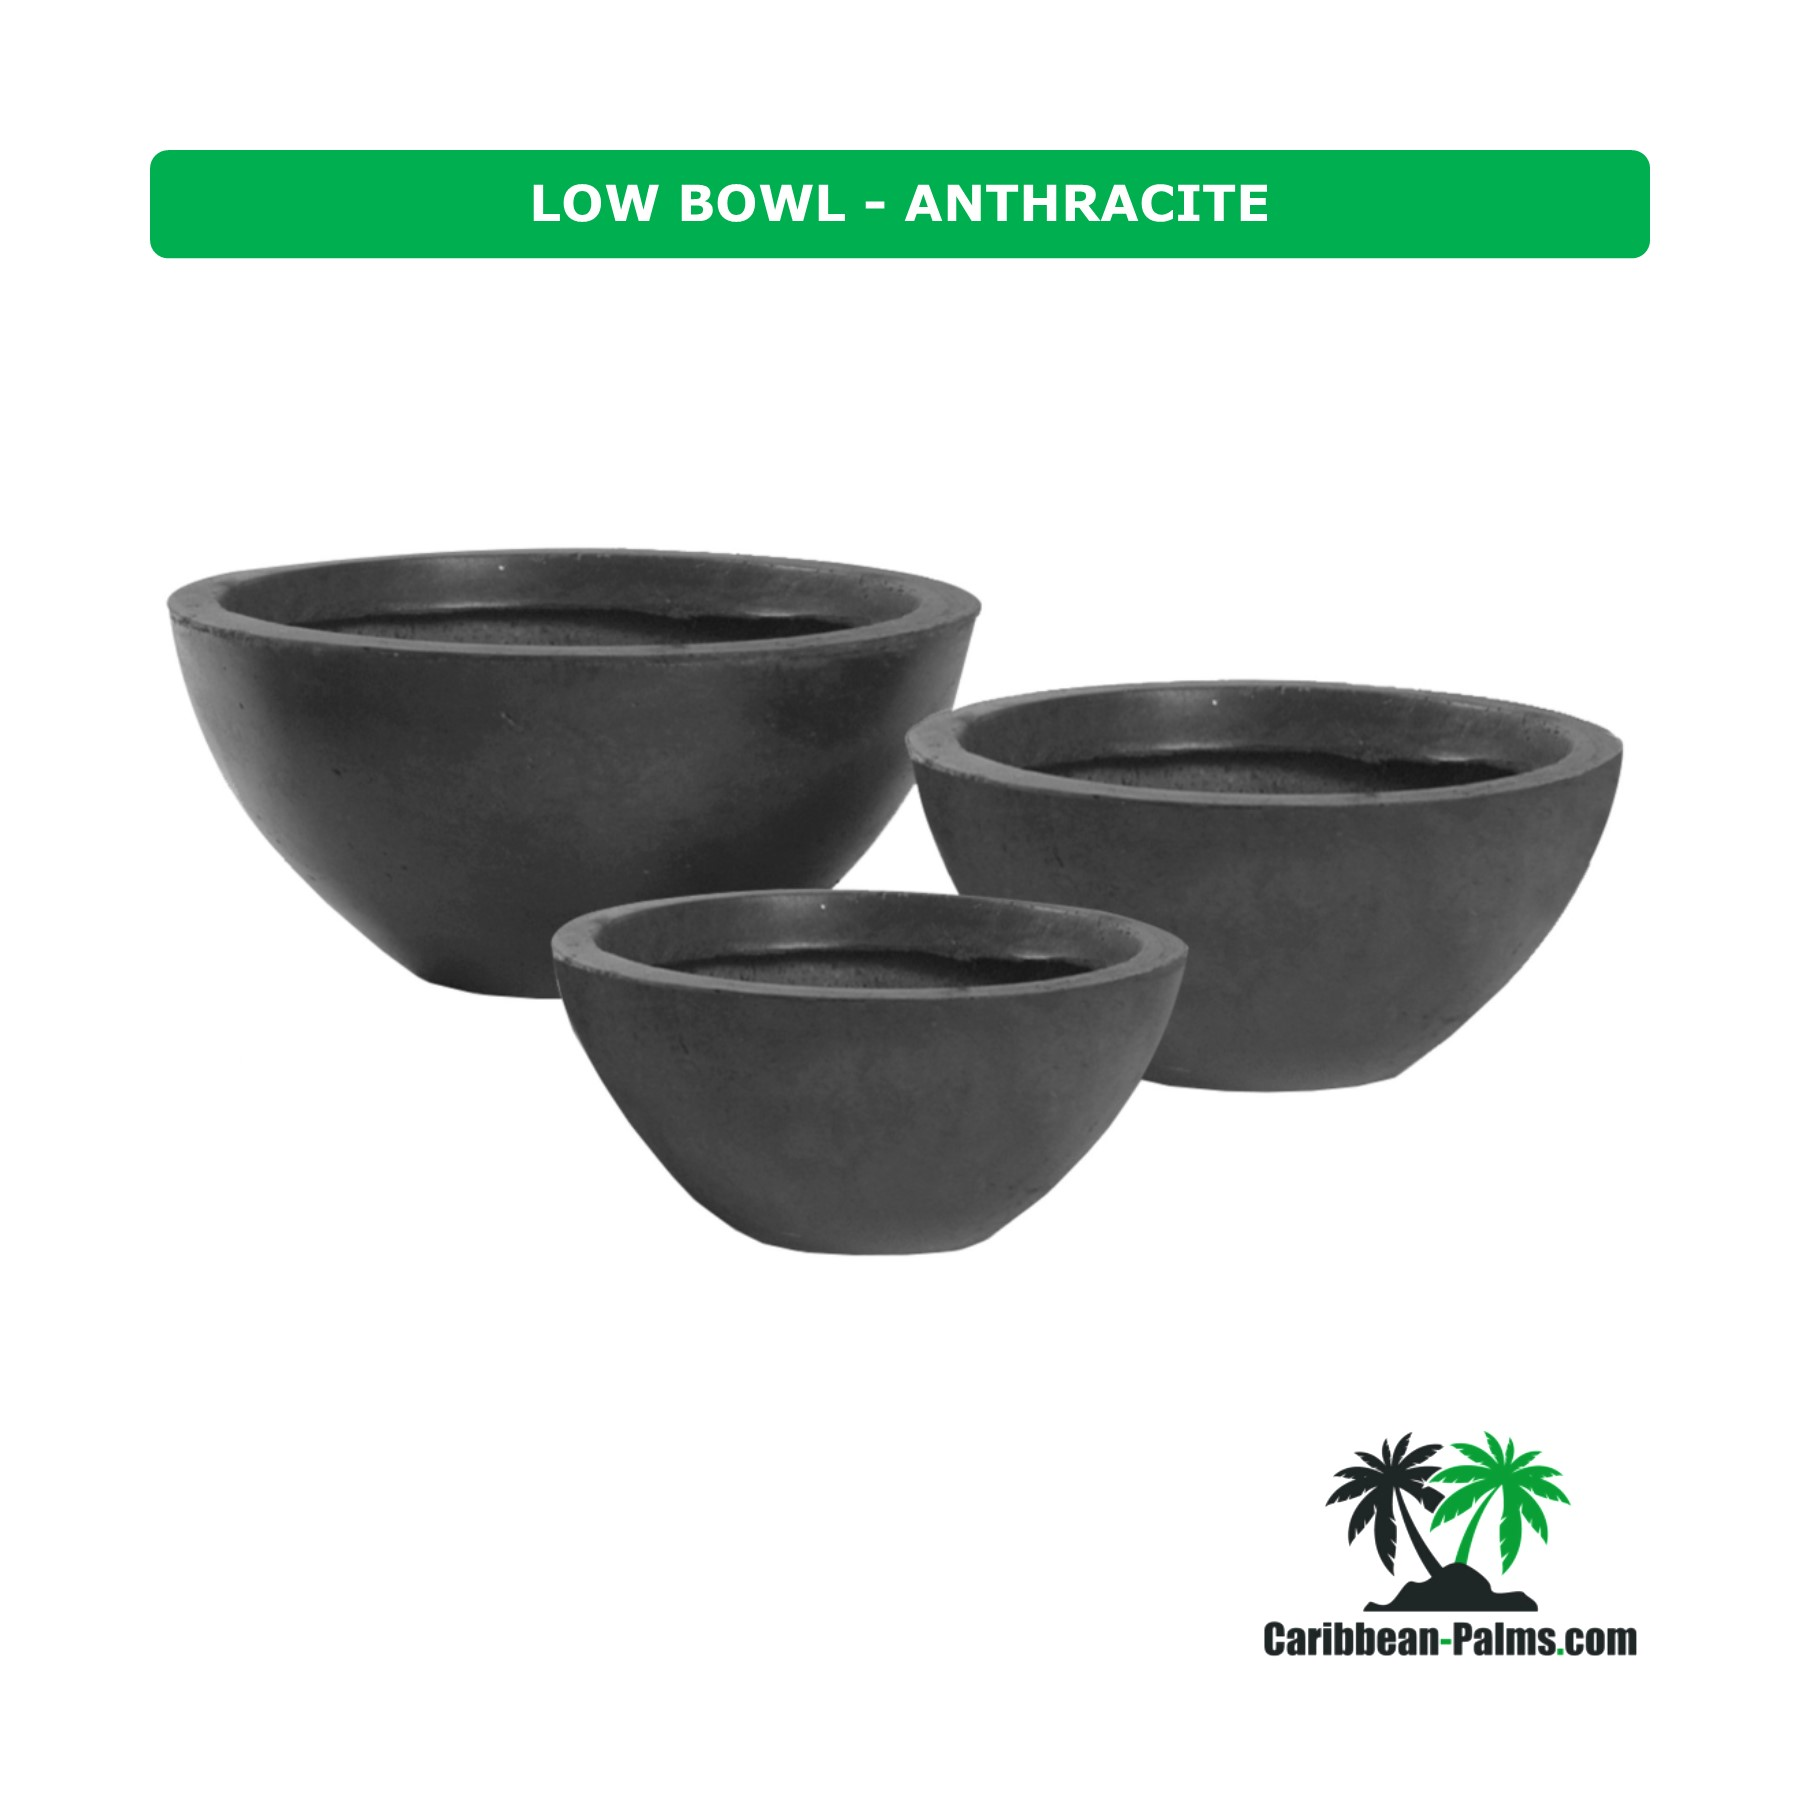 LOW BOWL ANTHRACITE